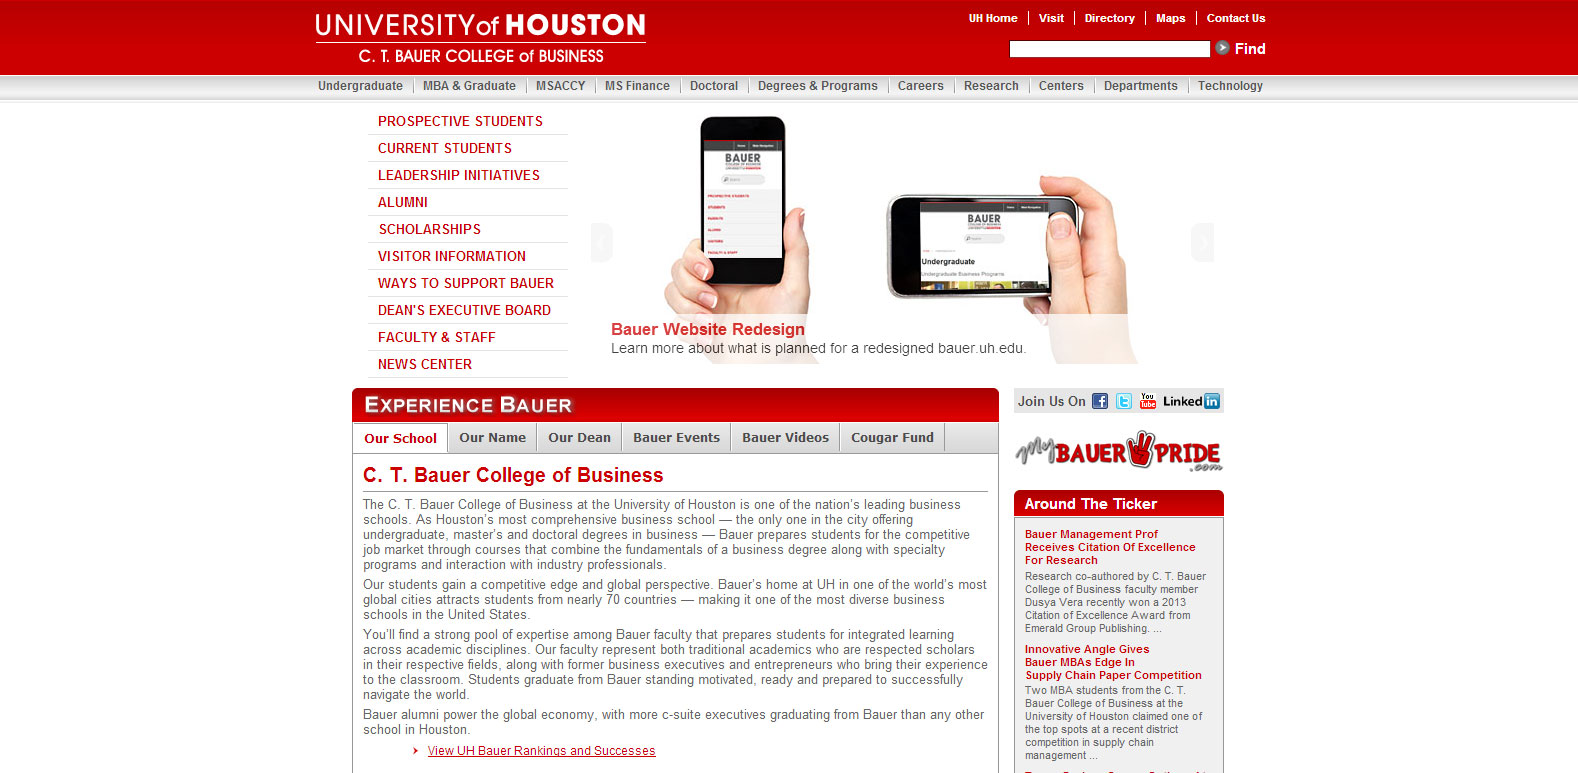 The original bauer.uh.edu website homepage that was first launched in 2008.